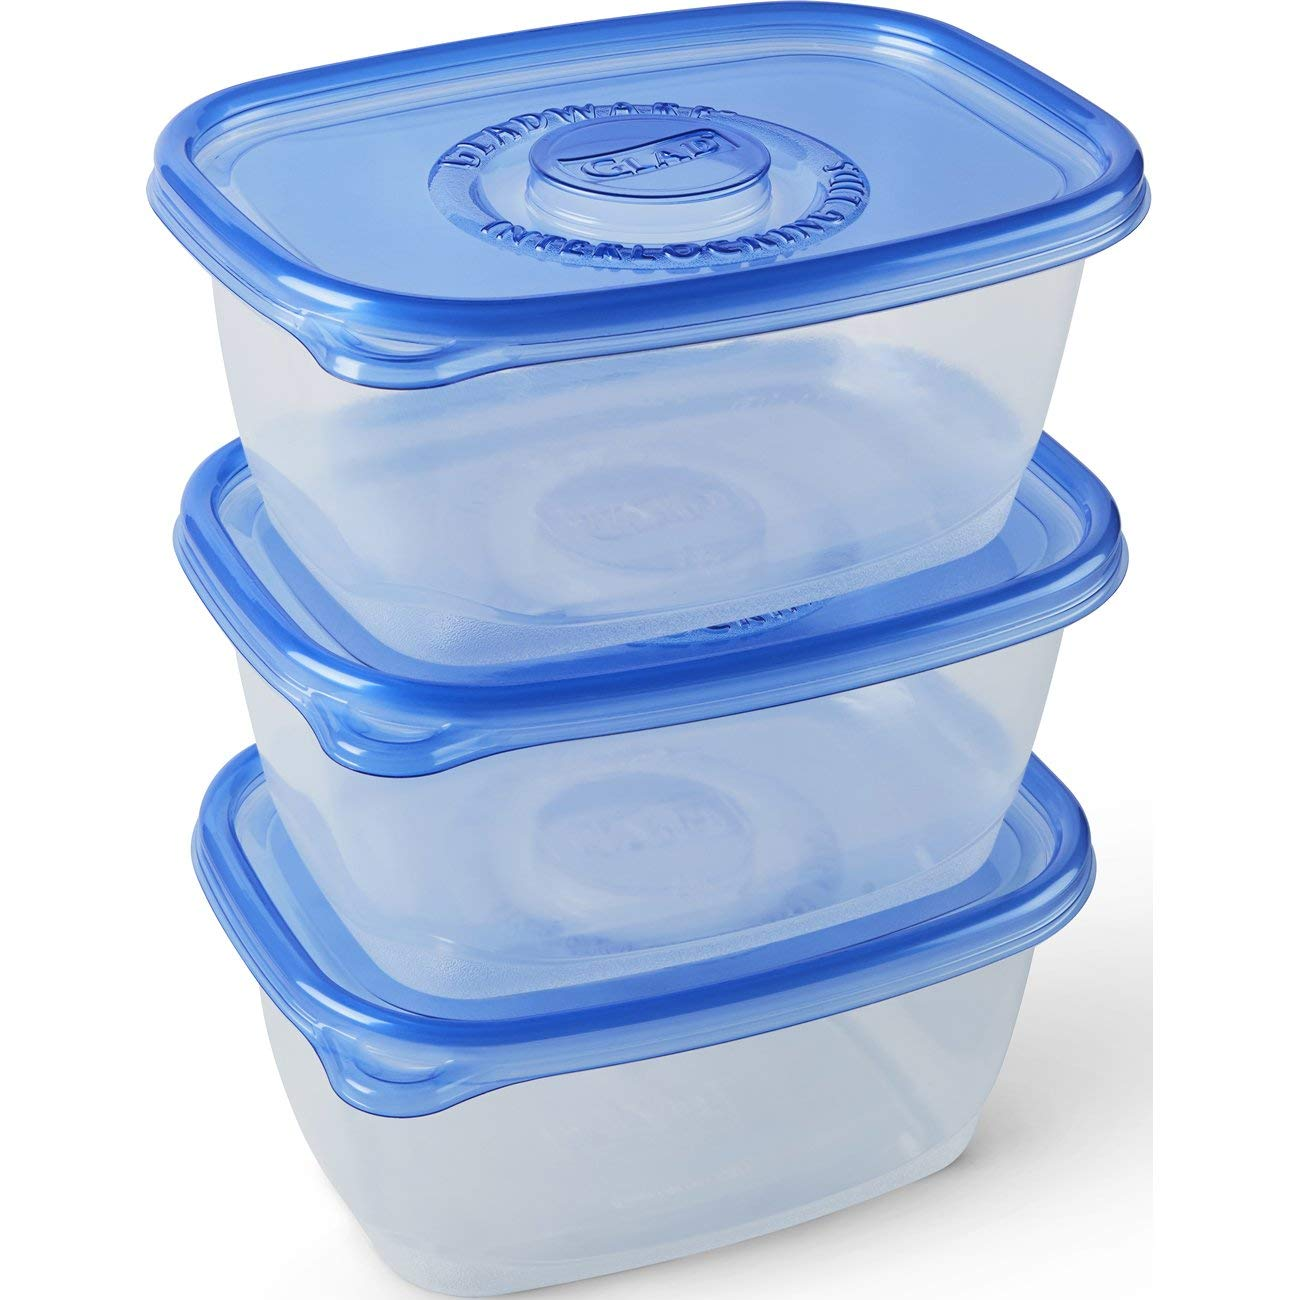 Glad Food Storage Containers - Deep Dish Container - 64 Ounce - 3 Containers